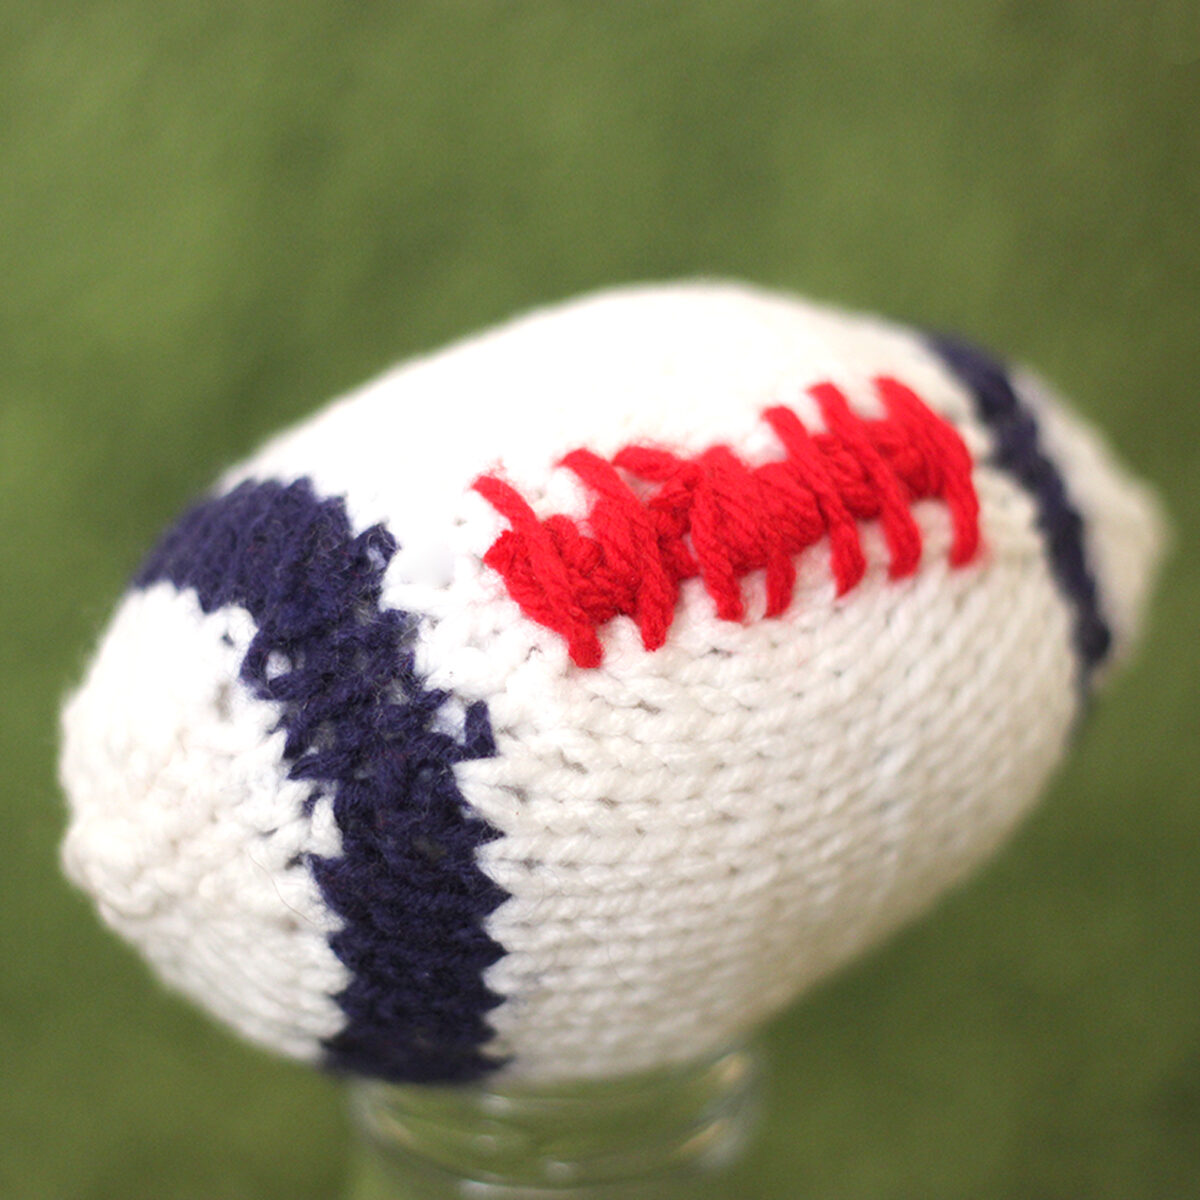 Knitted Football softie toy in white, blue, and red yarn colors.